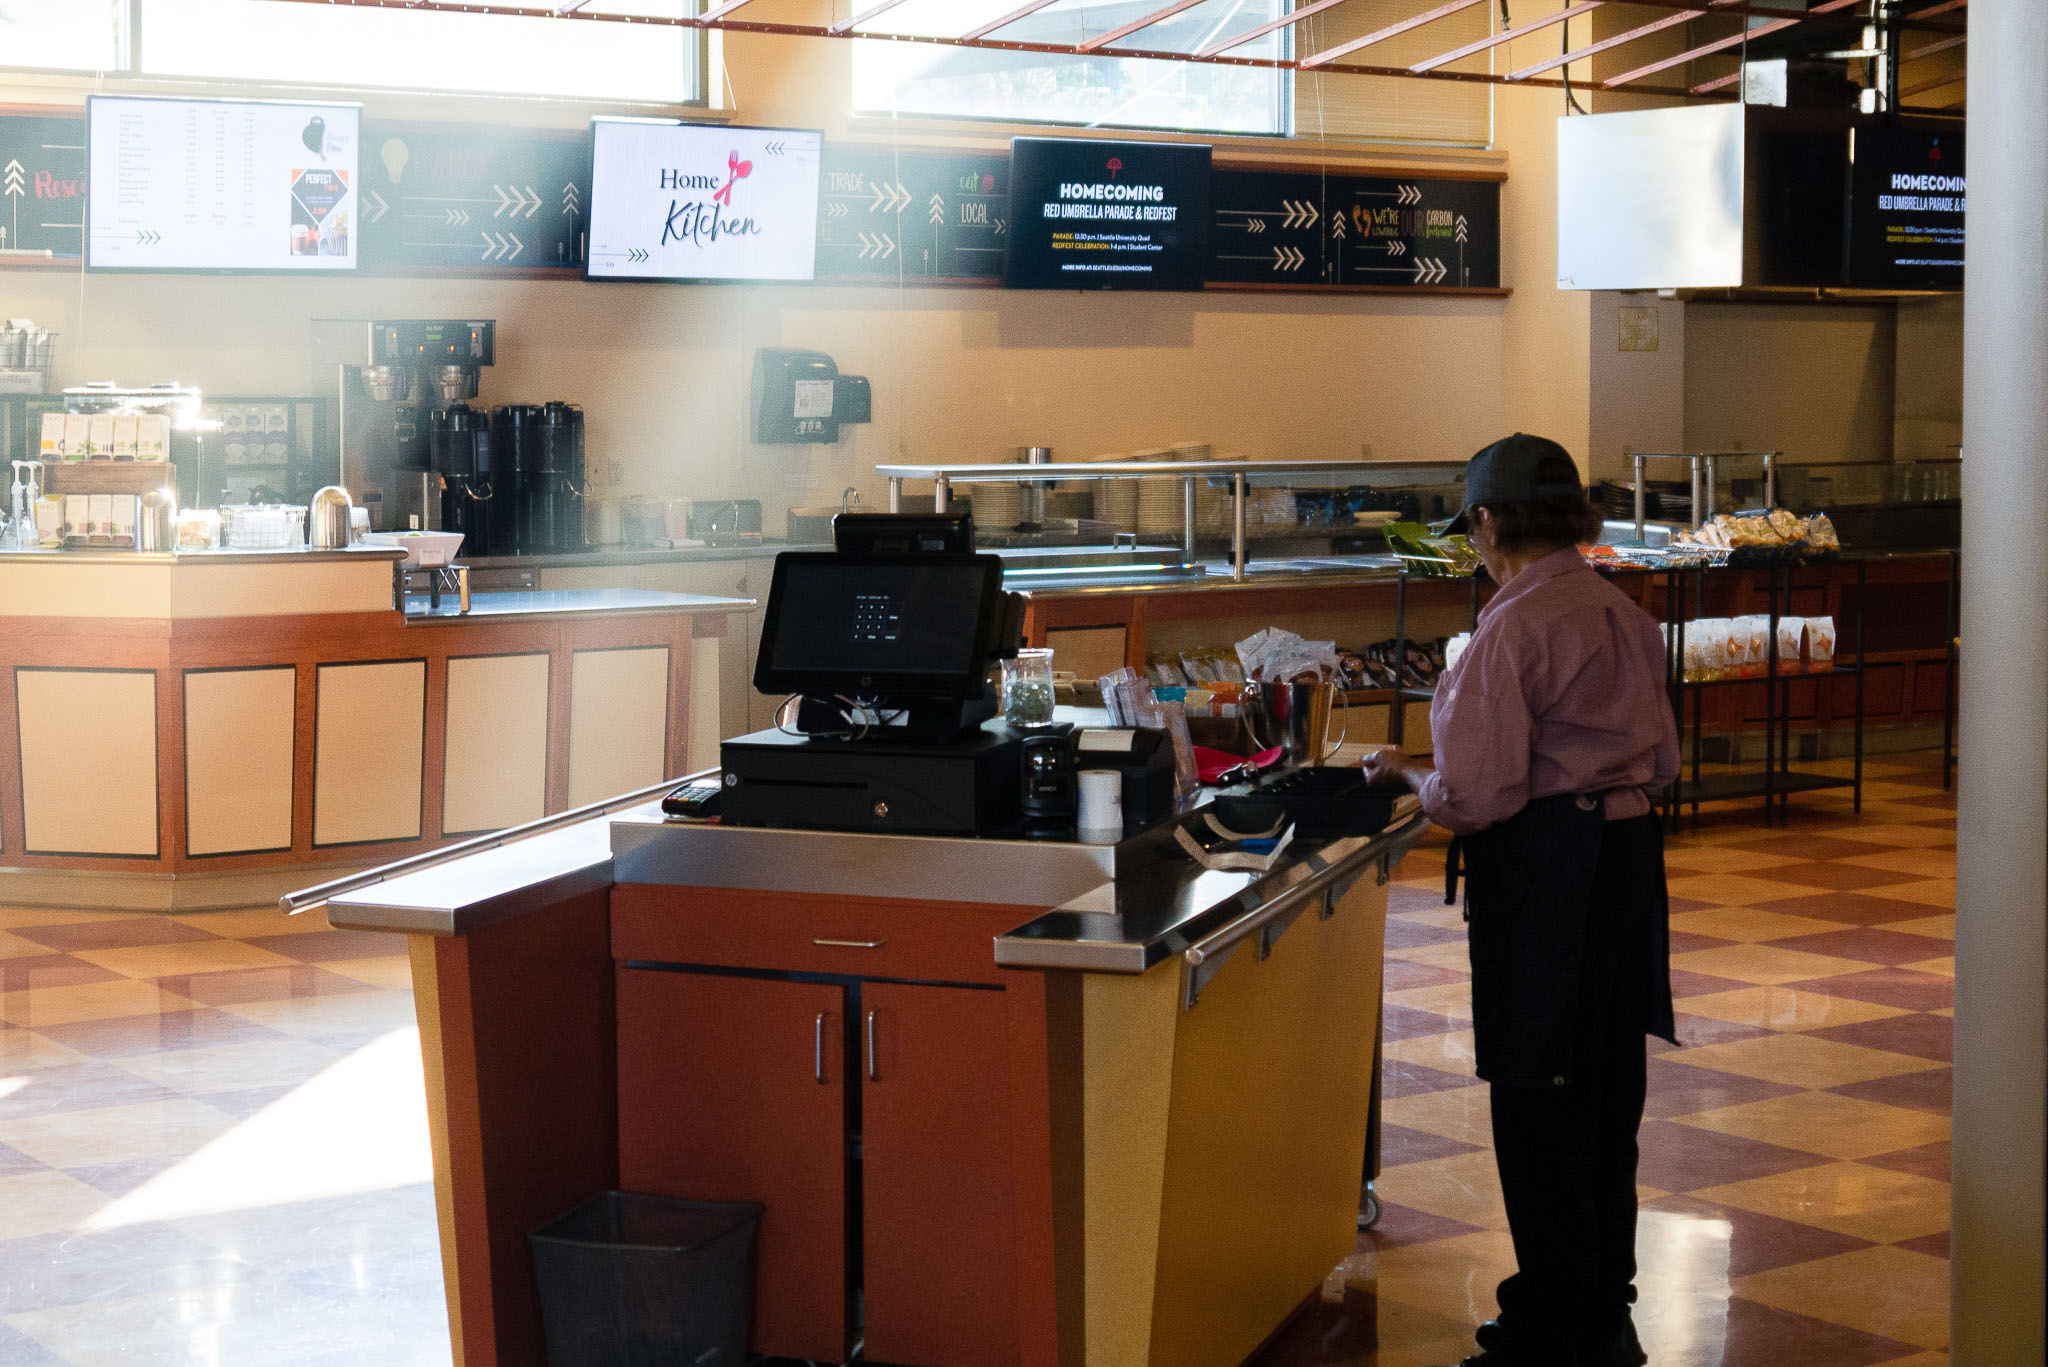 Chartwells Division President Responds to Ongoing Employee Concerns